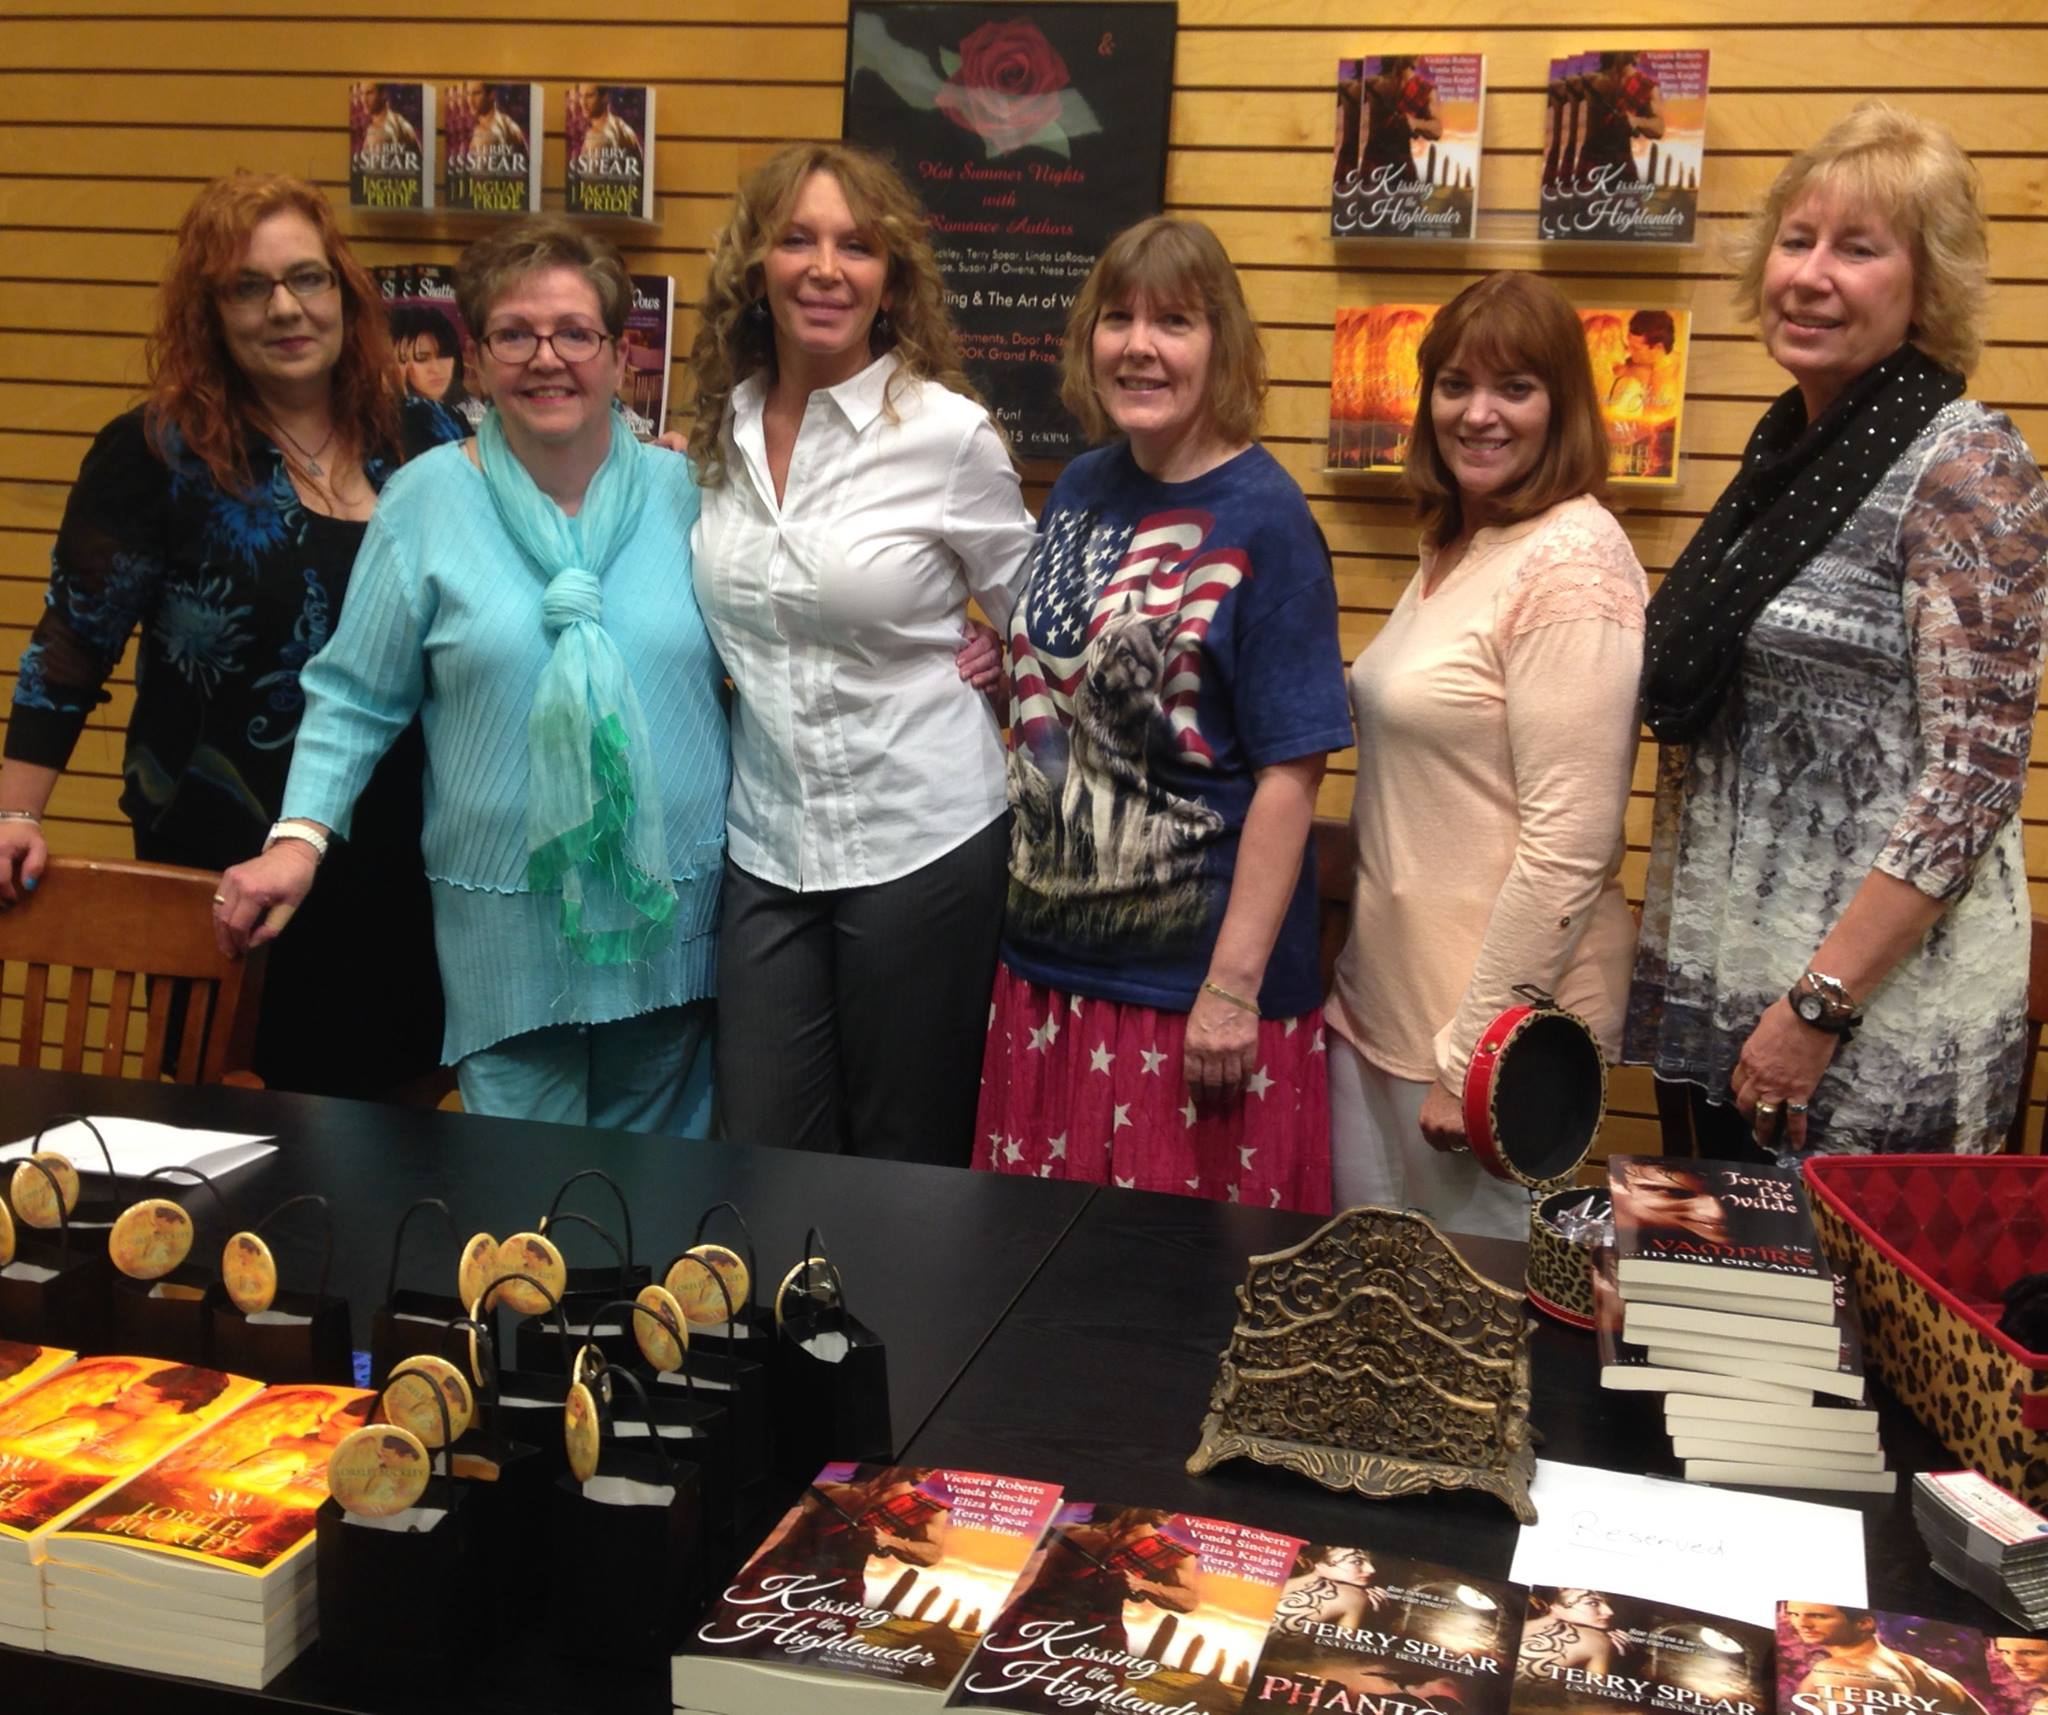 Fierce Romance Barnes And Noble Book Signing Waco Texas